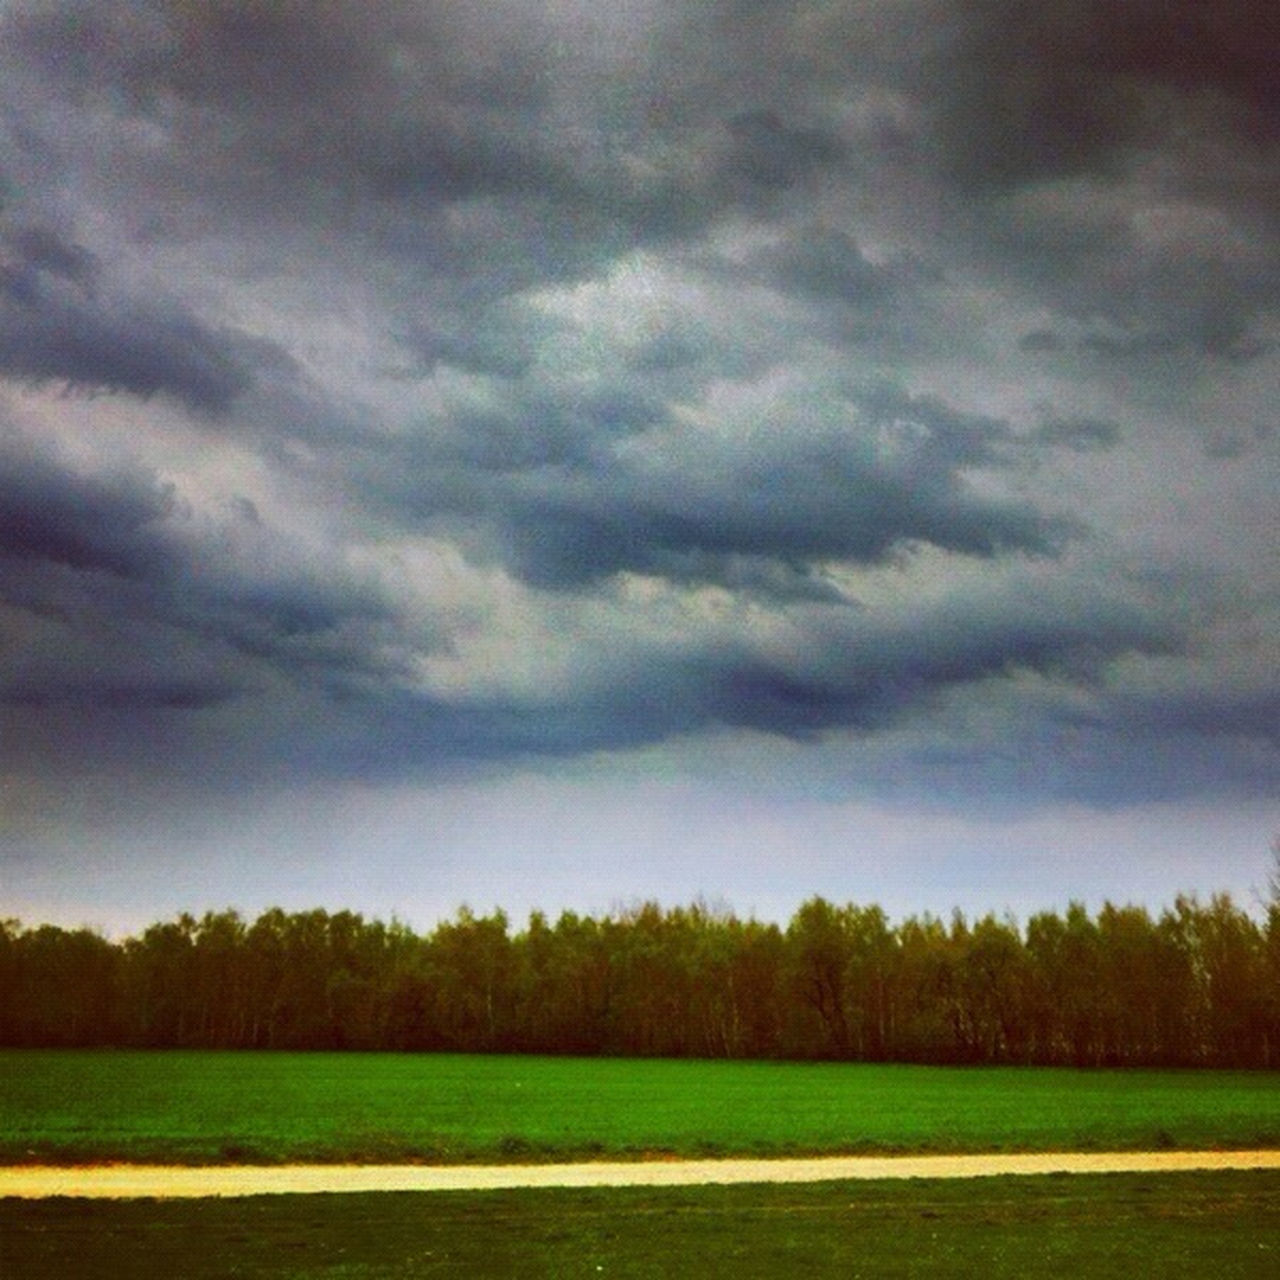 tranquility, tranquil scene, landscape, sky, beauty in nature, tree, nature, cloud - sky, scenics, field, weather, grass, no people, outdoors, storm cloud, day, silhouette, scenery